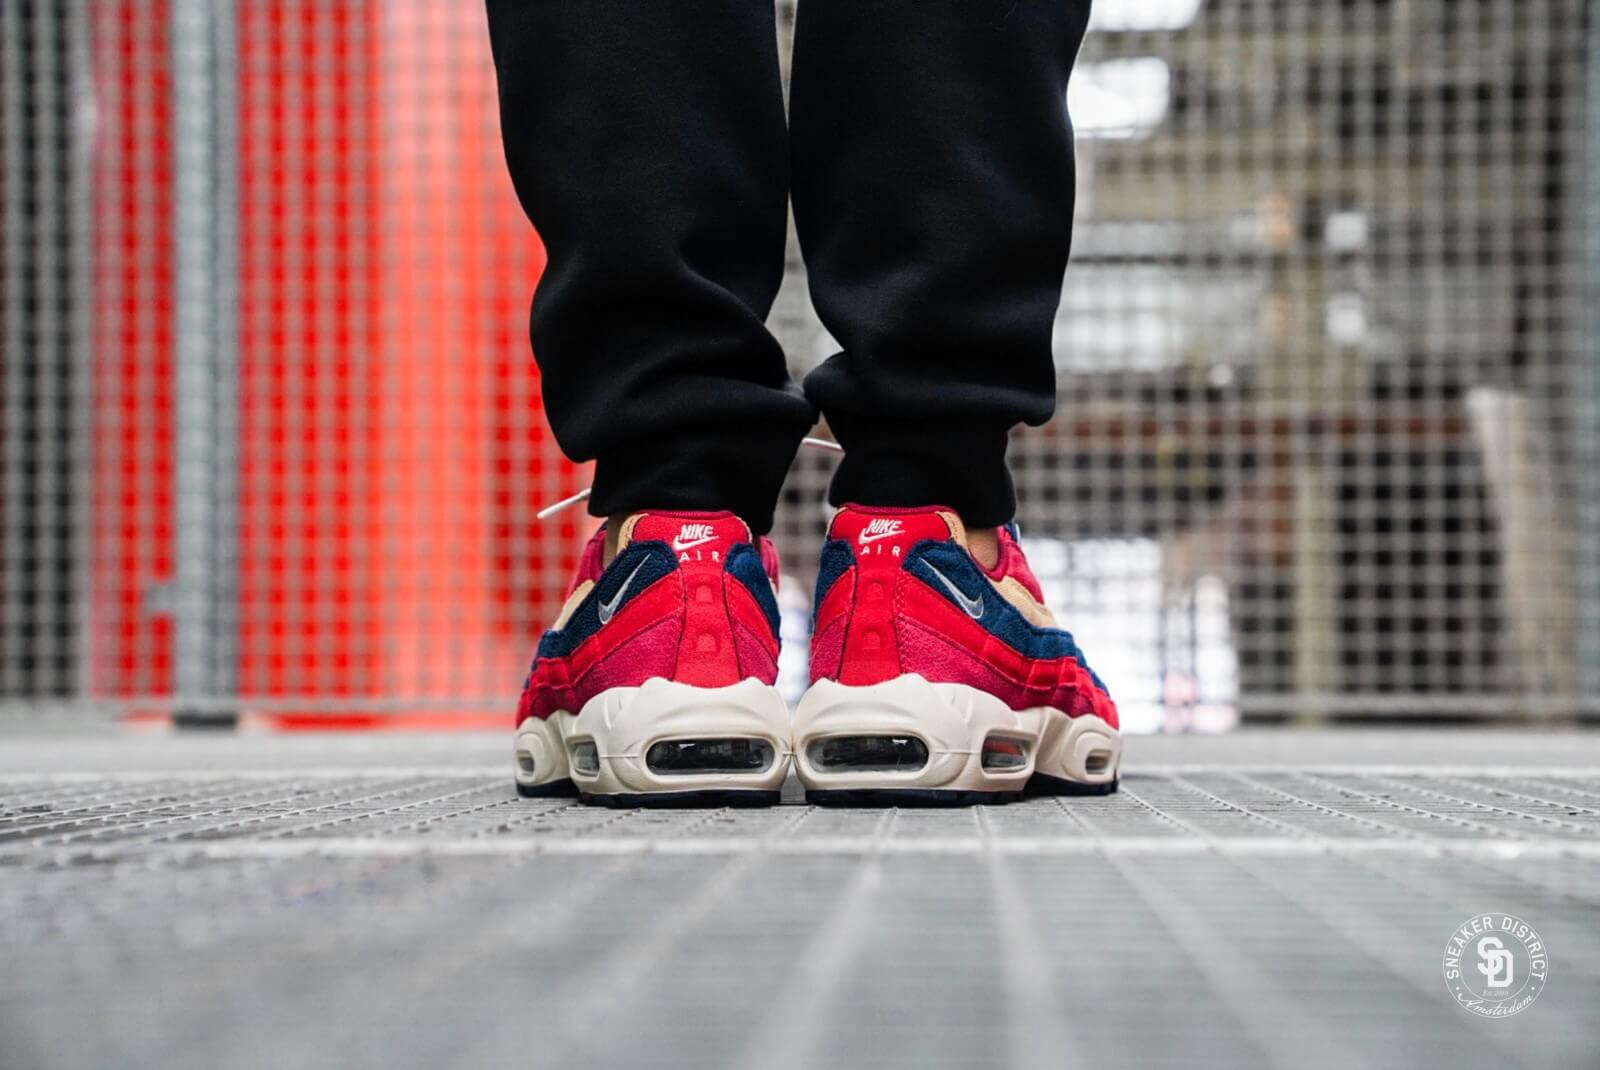 ... new style nike air max 95 premium red crush provence purple wheat gold  0b700 f9a40 0a20c6bff